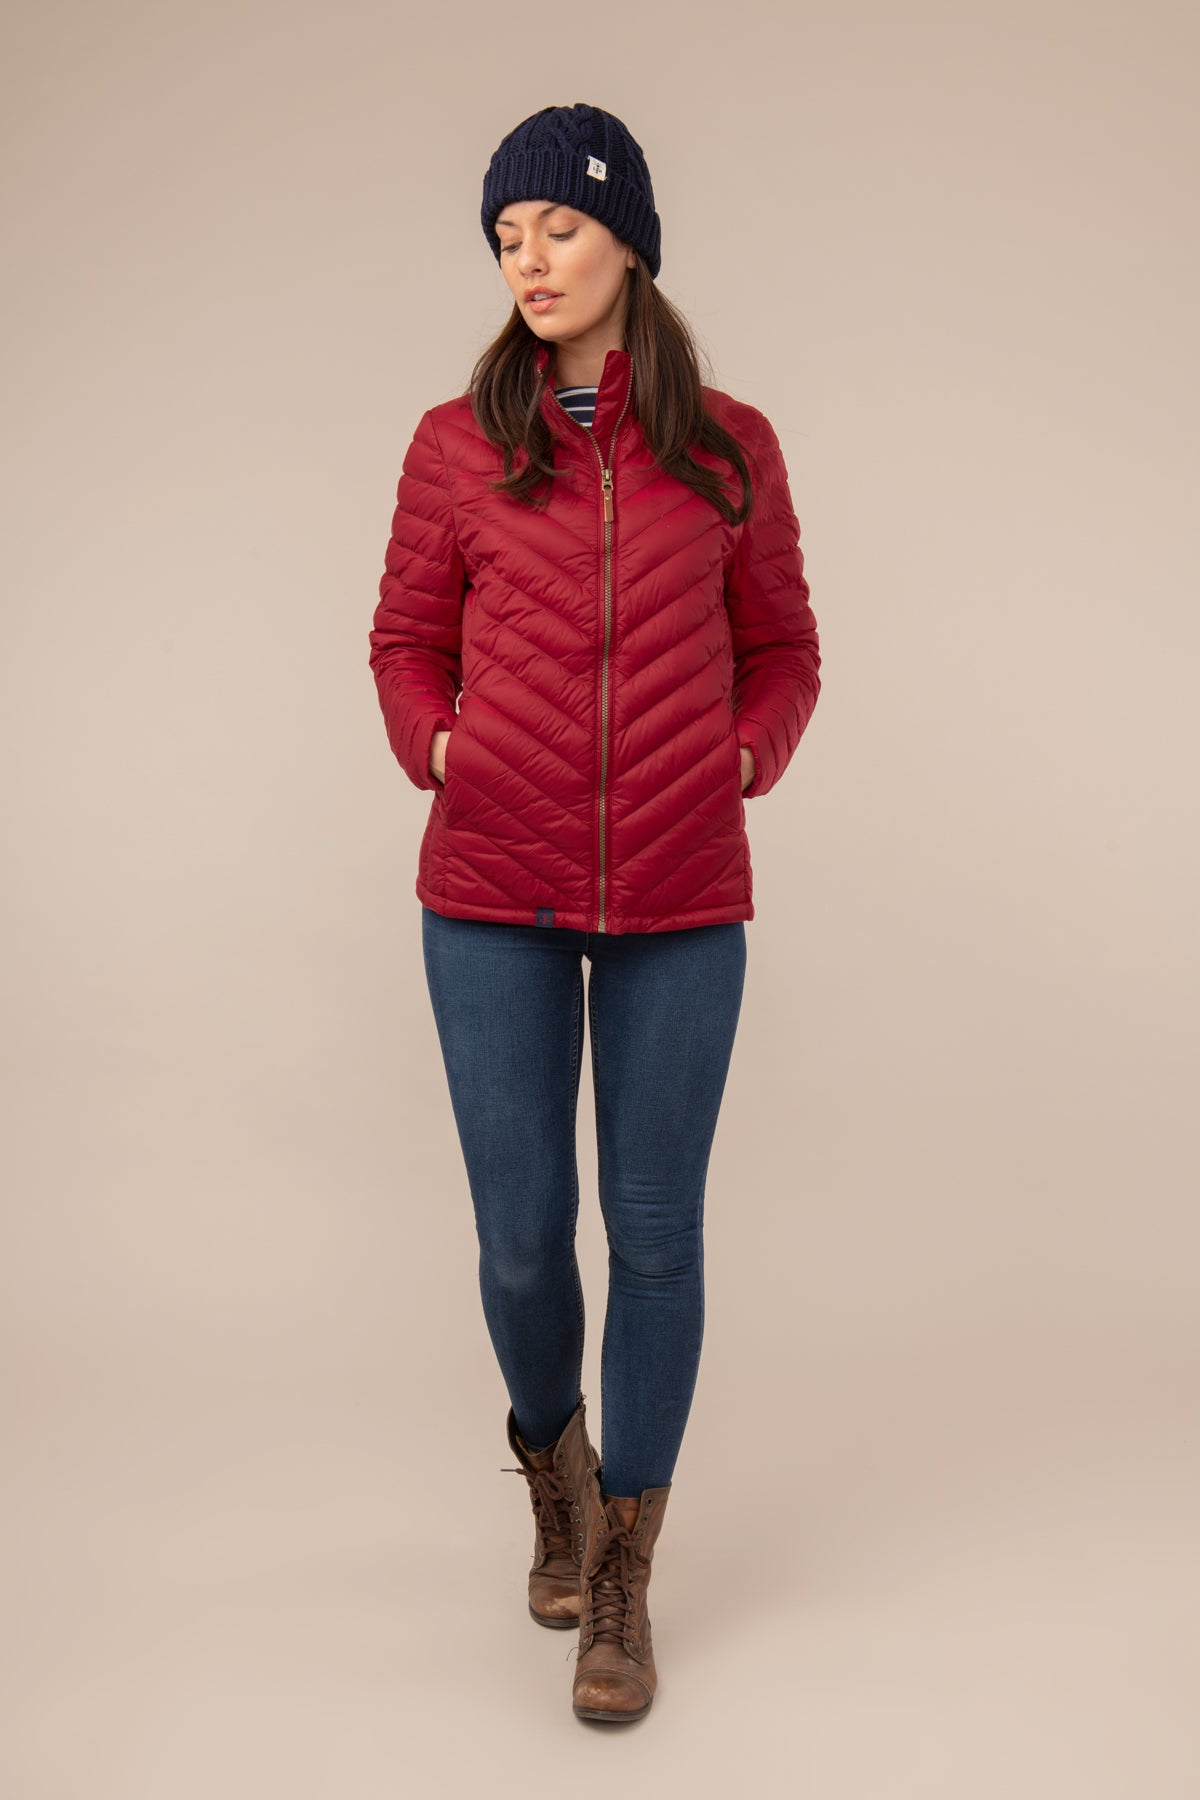 Lighthouse Lara Womens Lightweight Warm Down Jacket - Red